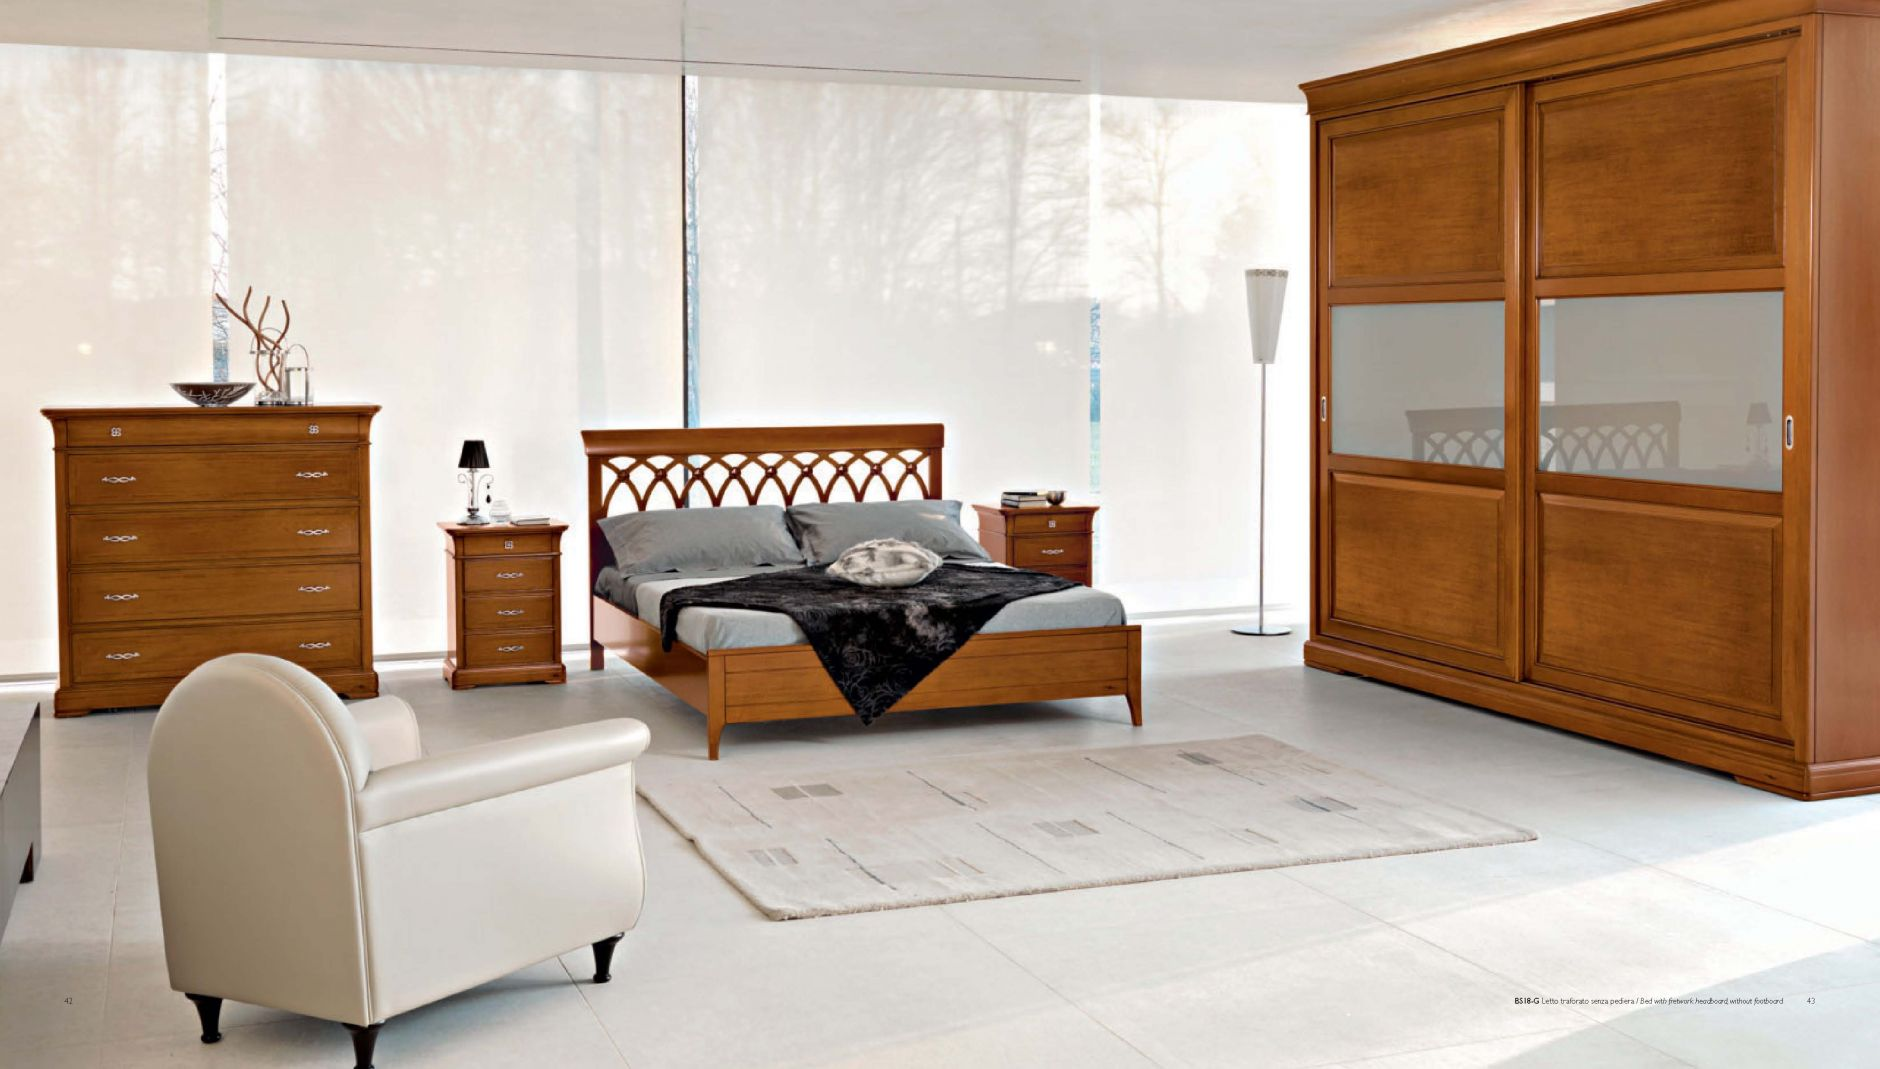 BEDROOMS - Bedroom Accademia del Mobile BELLAGIO SeriesFurniture ...